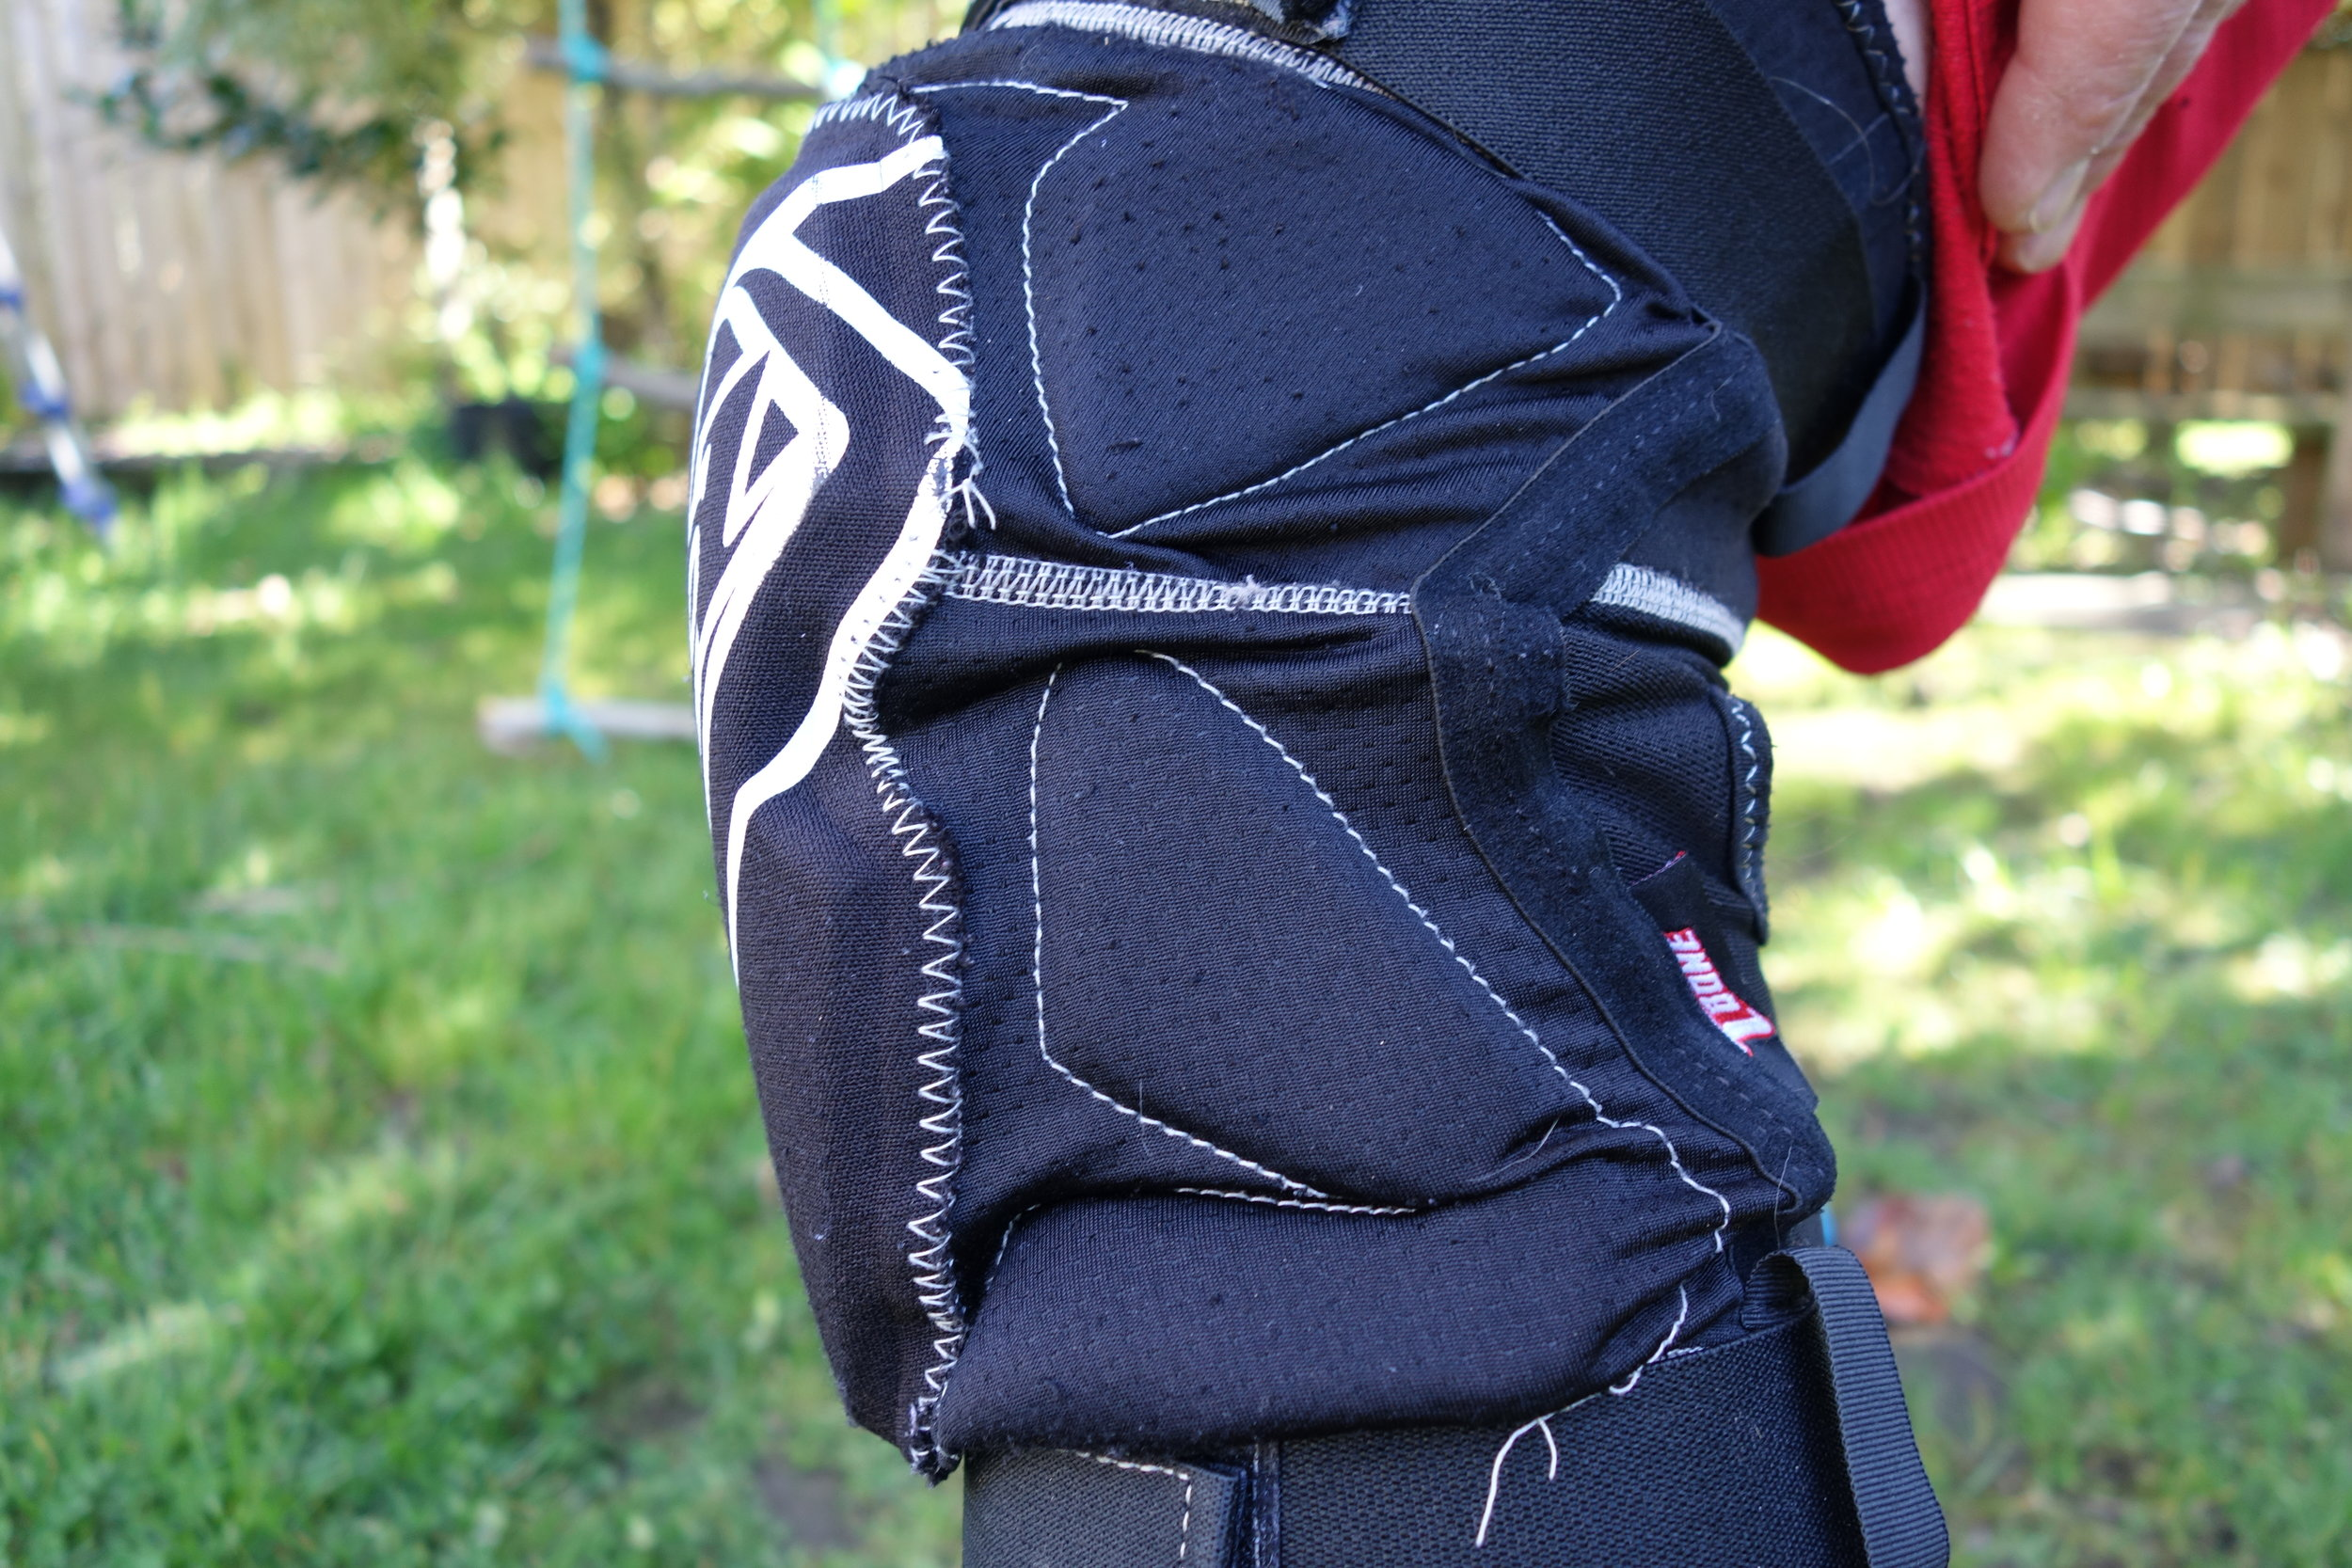 There is a bit of neoprene at the back panel, but the rest is a good breathable wicking material that is double layered so they have lasted very well so far. The stitching has popped in a few places but they have had a lot of use and it hasn't needed repair.